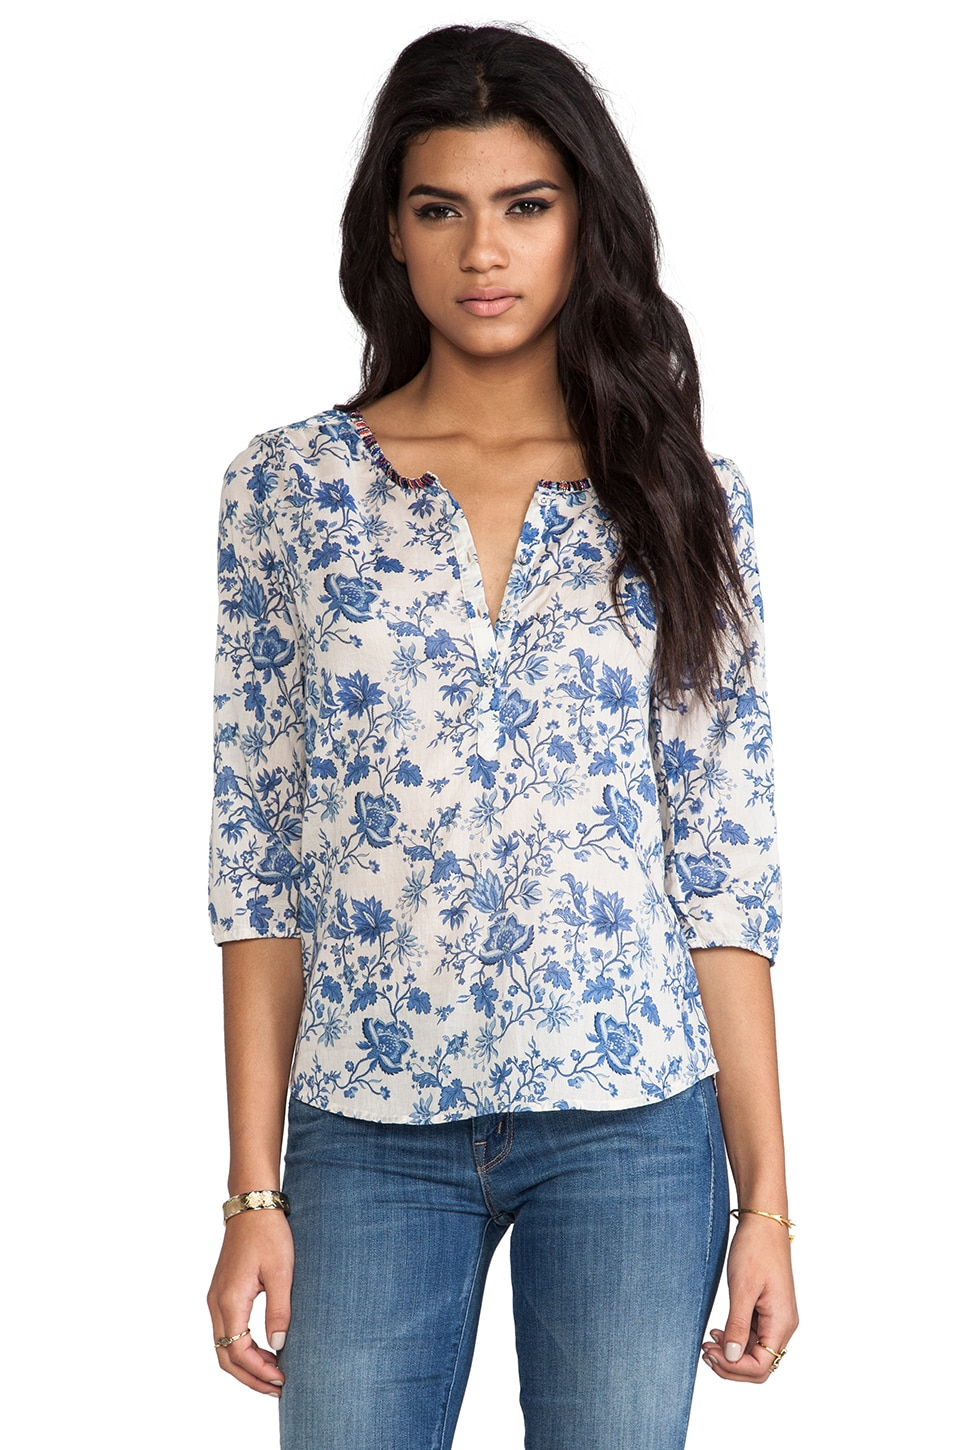 Maison Scotch Beaded Neck Blouse in Blue Floral